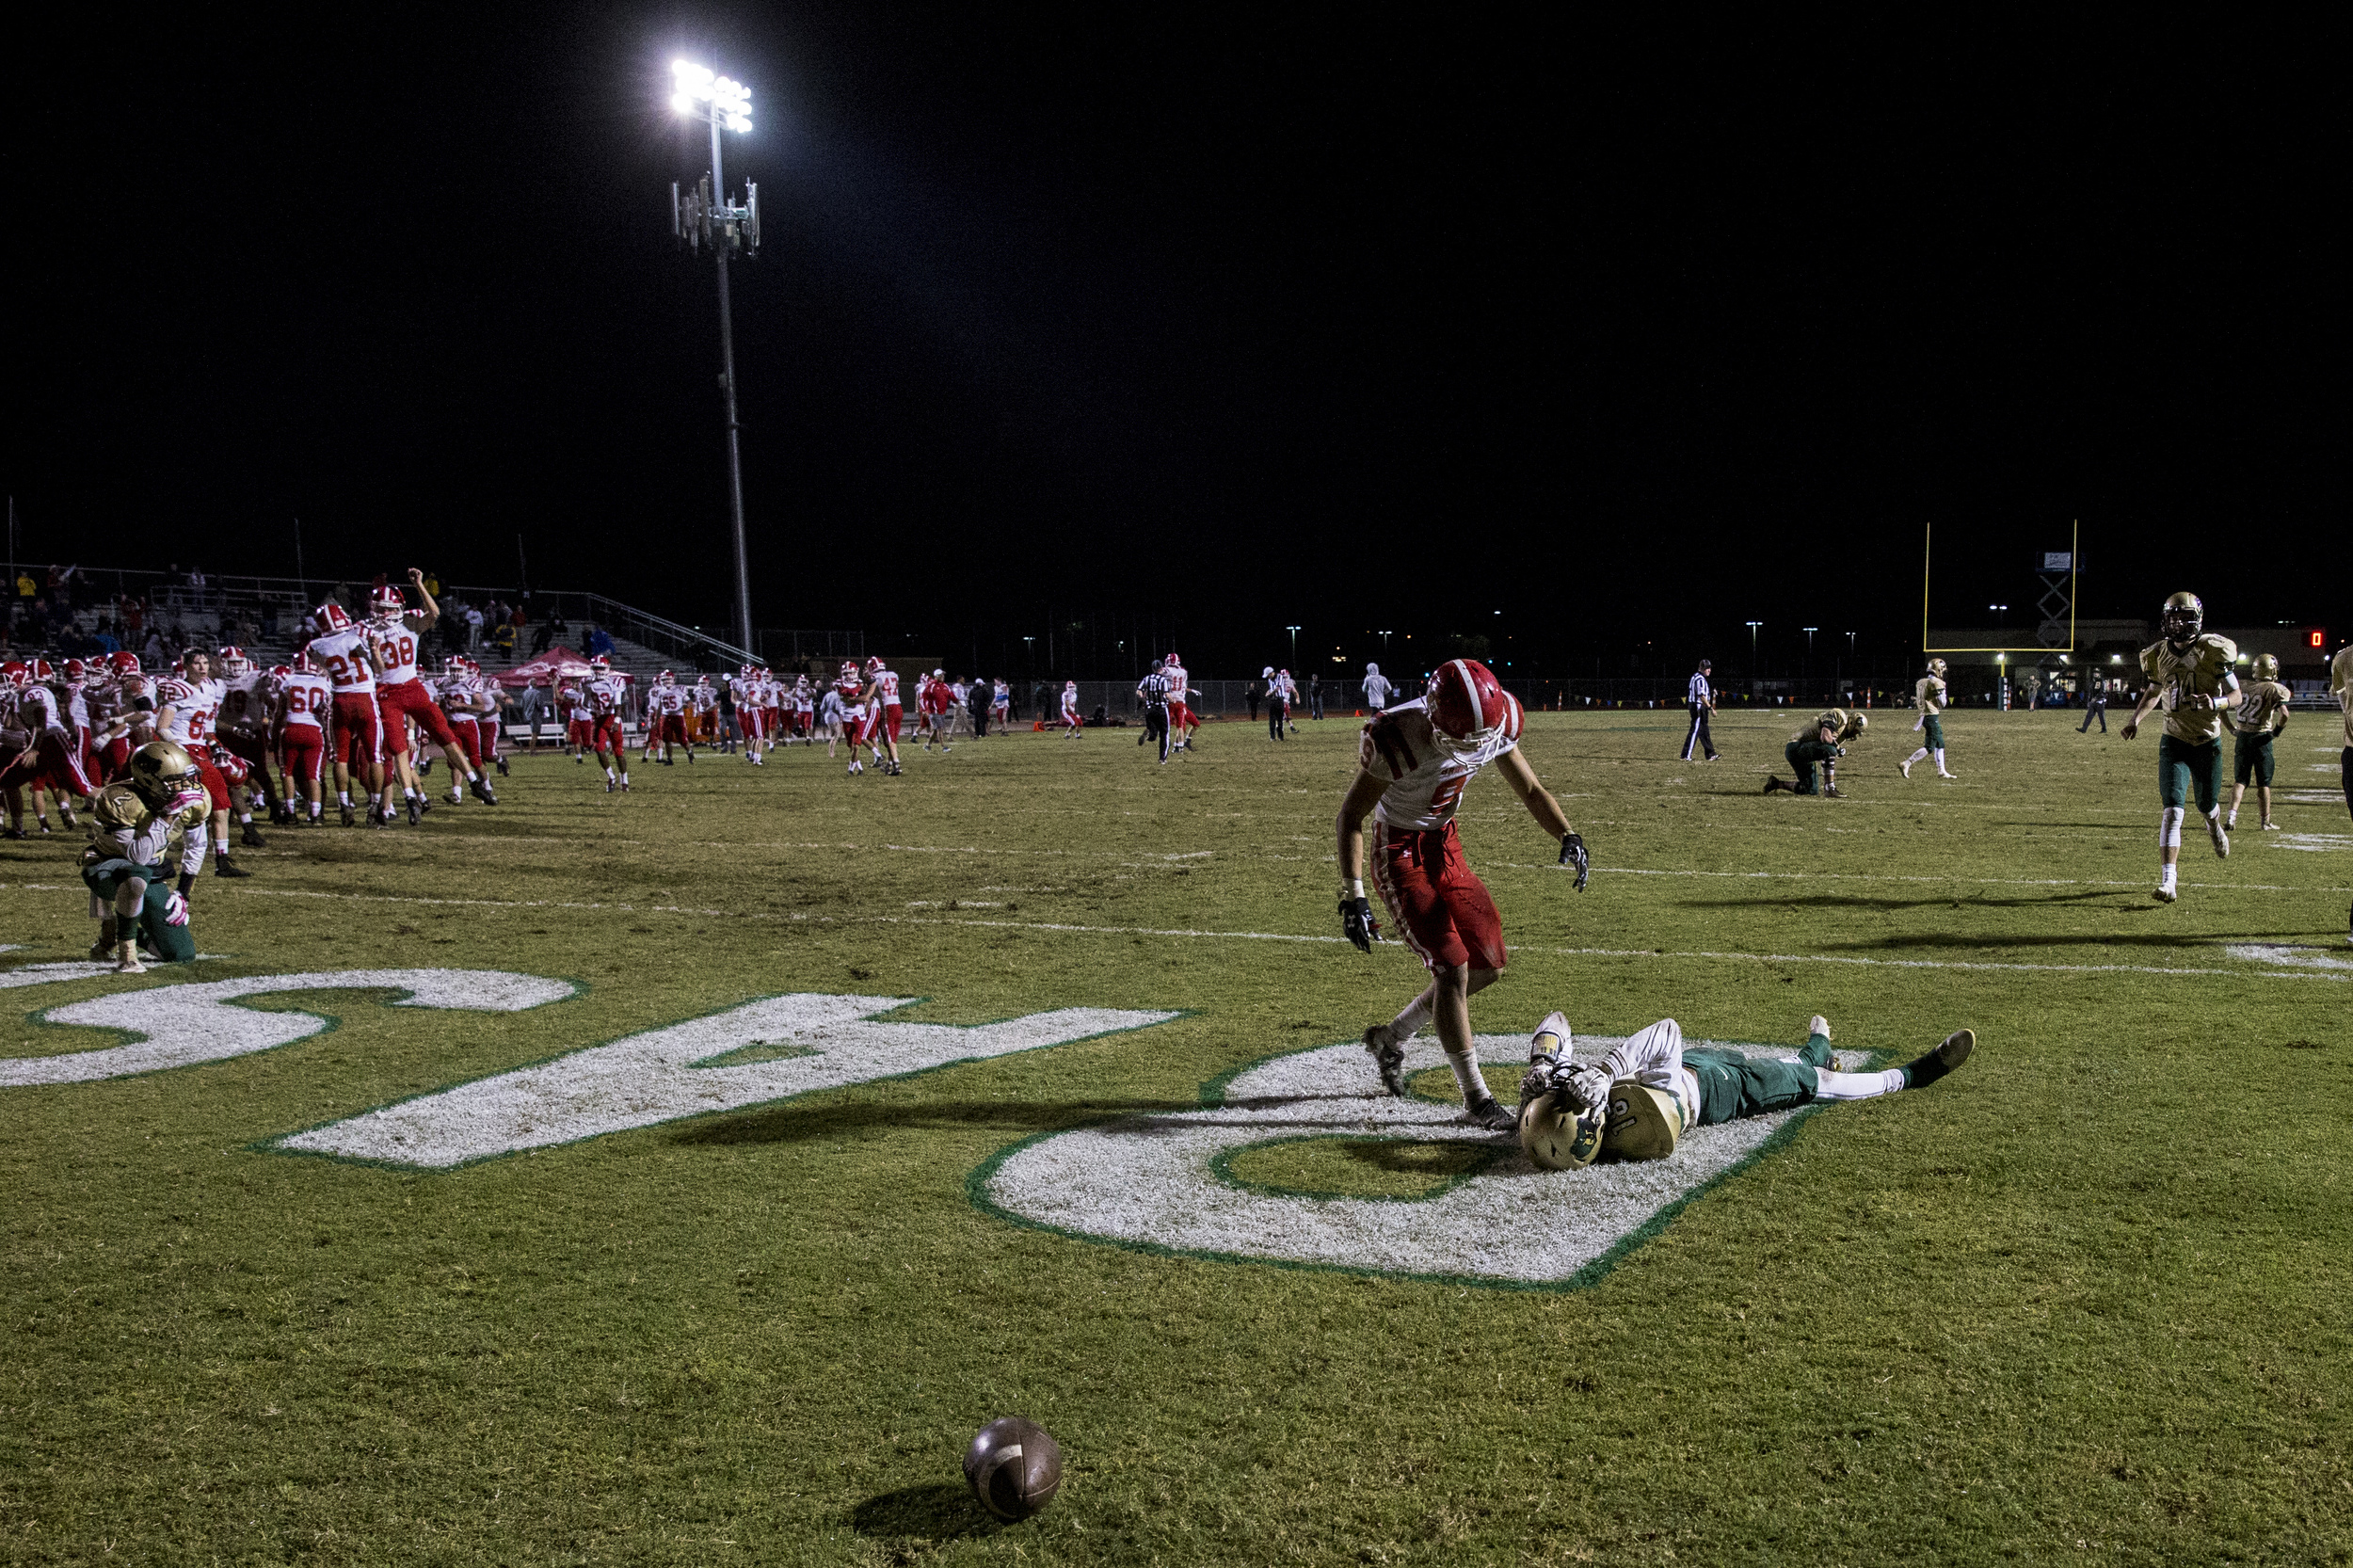 Brophy's Jimmy Hawkins goes to help up Basha's Terrell Brown after he missed a catch in the endzone during overtime at Basha High School on Thursday, Oct. 29, 2015 in Chandler, Ariz. Brophy won, 49-42.